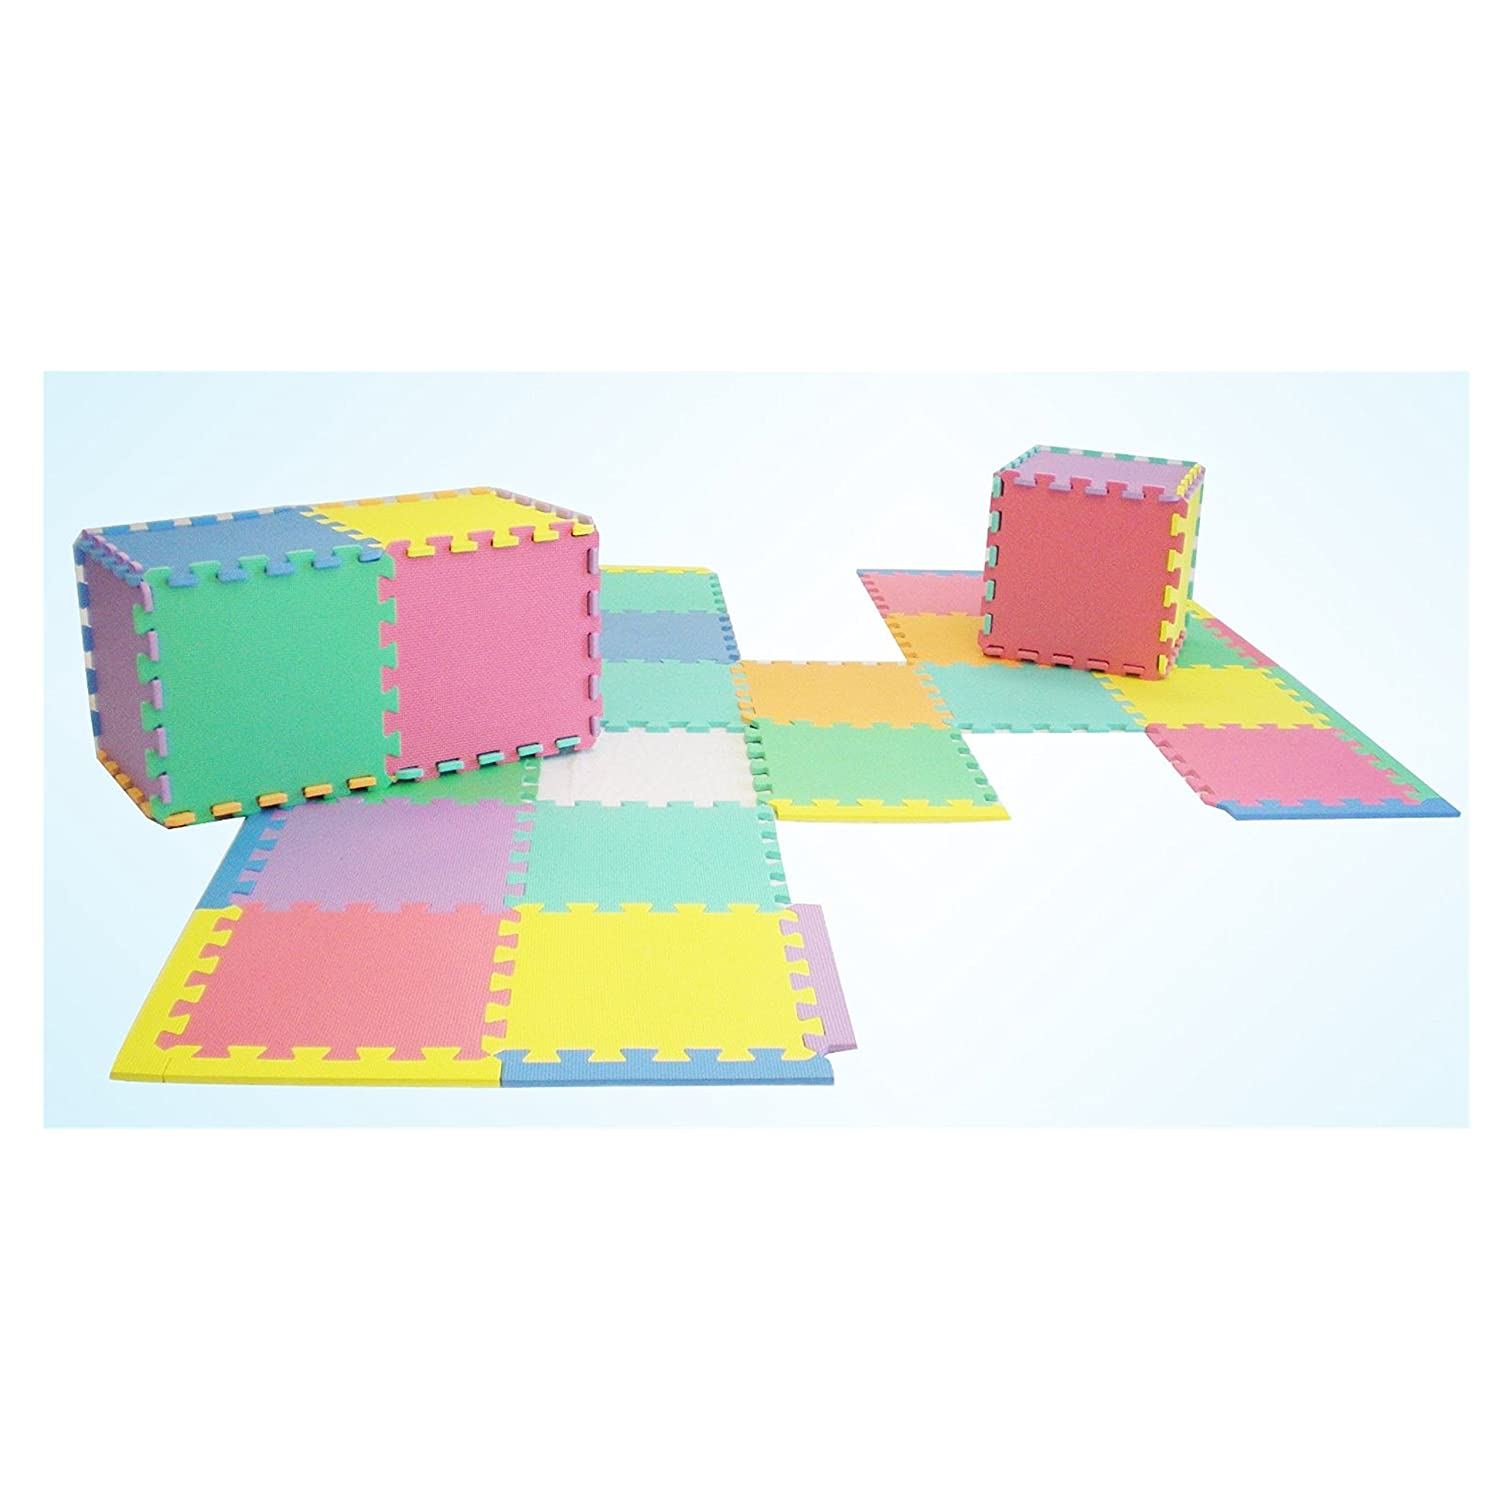 Amazon.com : MEDca Floor Play Mat EVA Interlocking 10pk 11.5x11.5 Inches Assorted Soft Colors